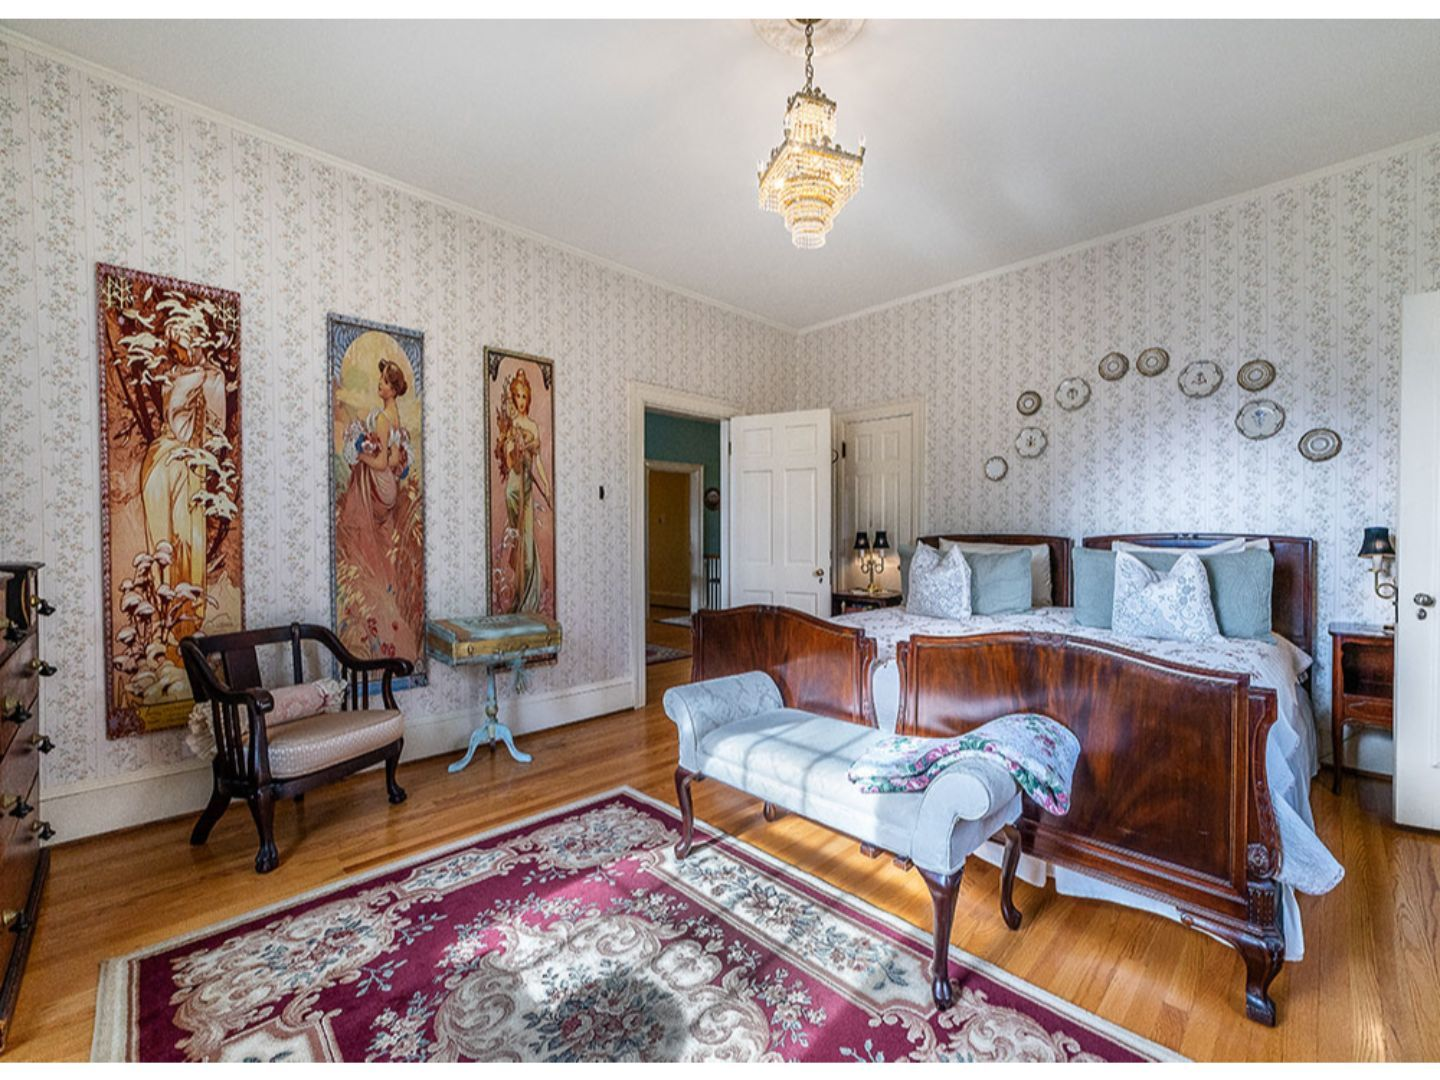 A living room filled with furniture and a fire place at Hillcrest Mansion Inn.